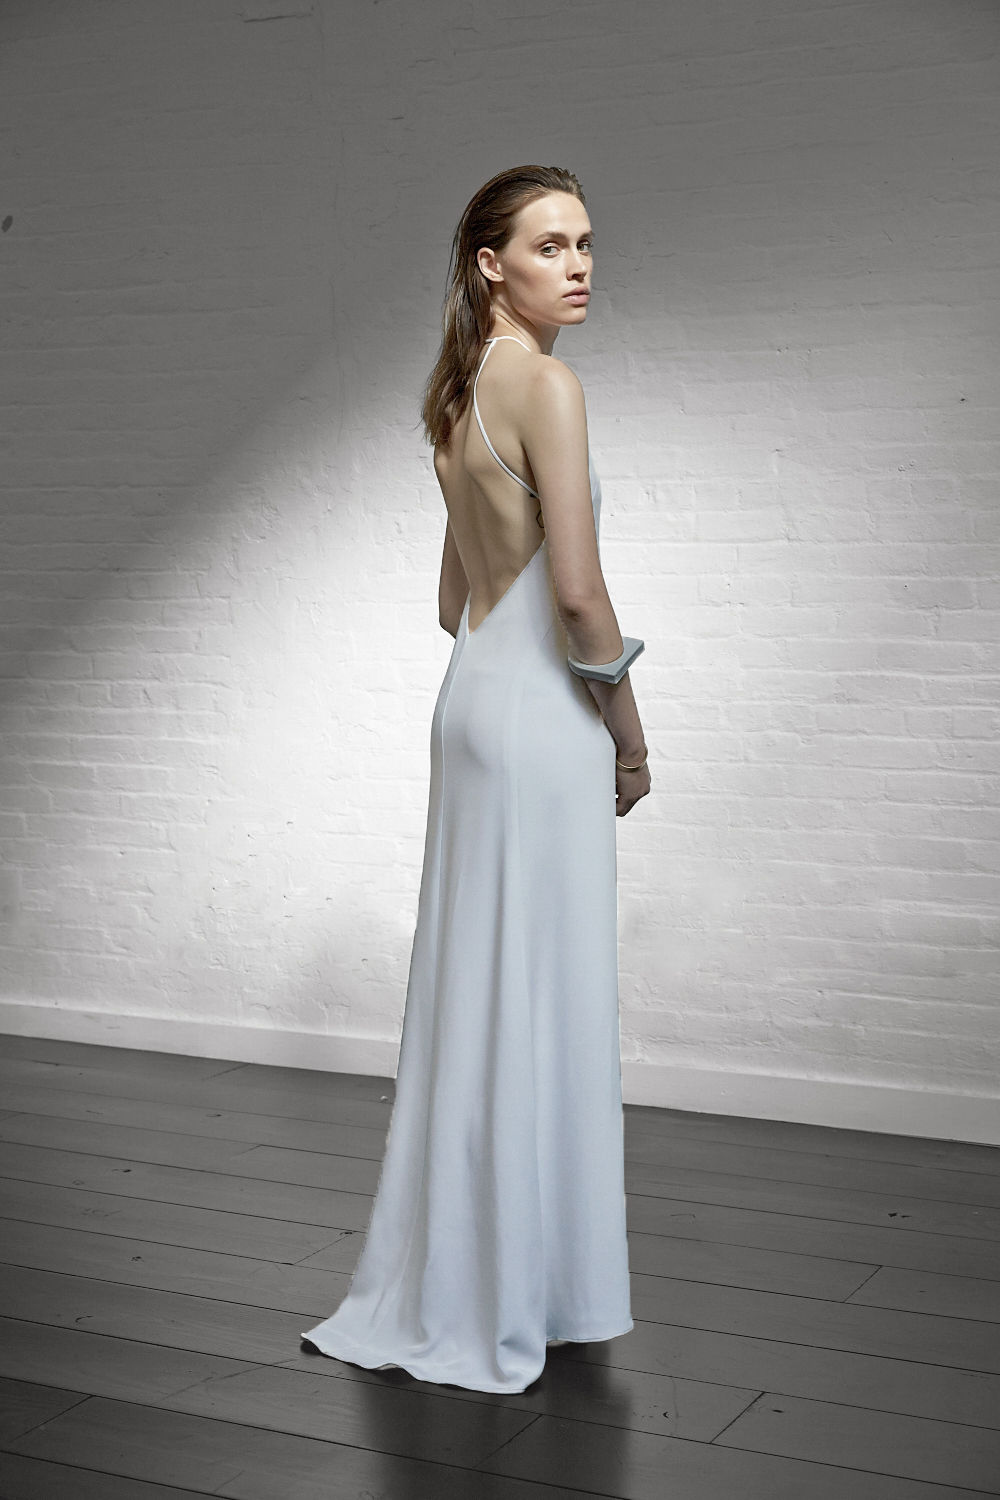 The Veda Team Just Launched an Under-$600 Minimalist Bridal Line ...